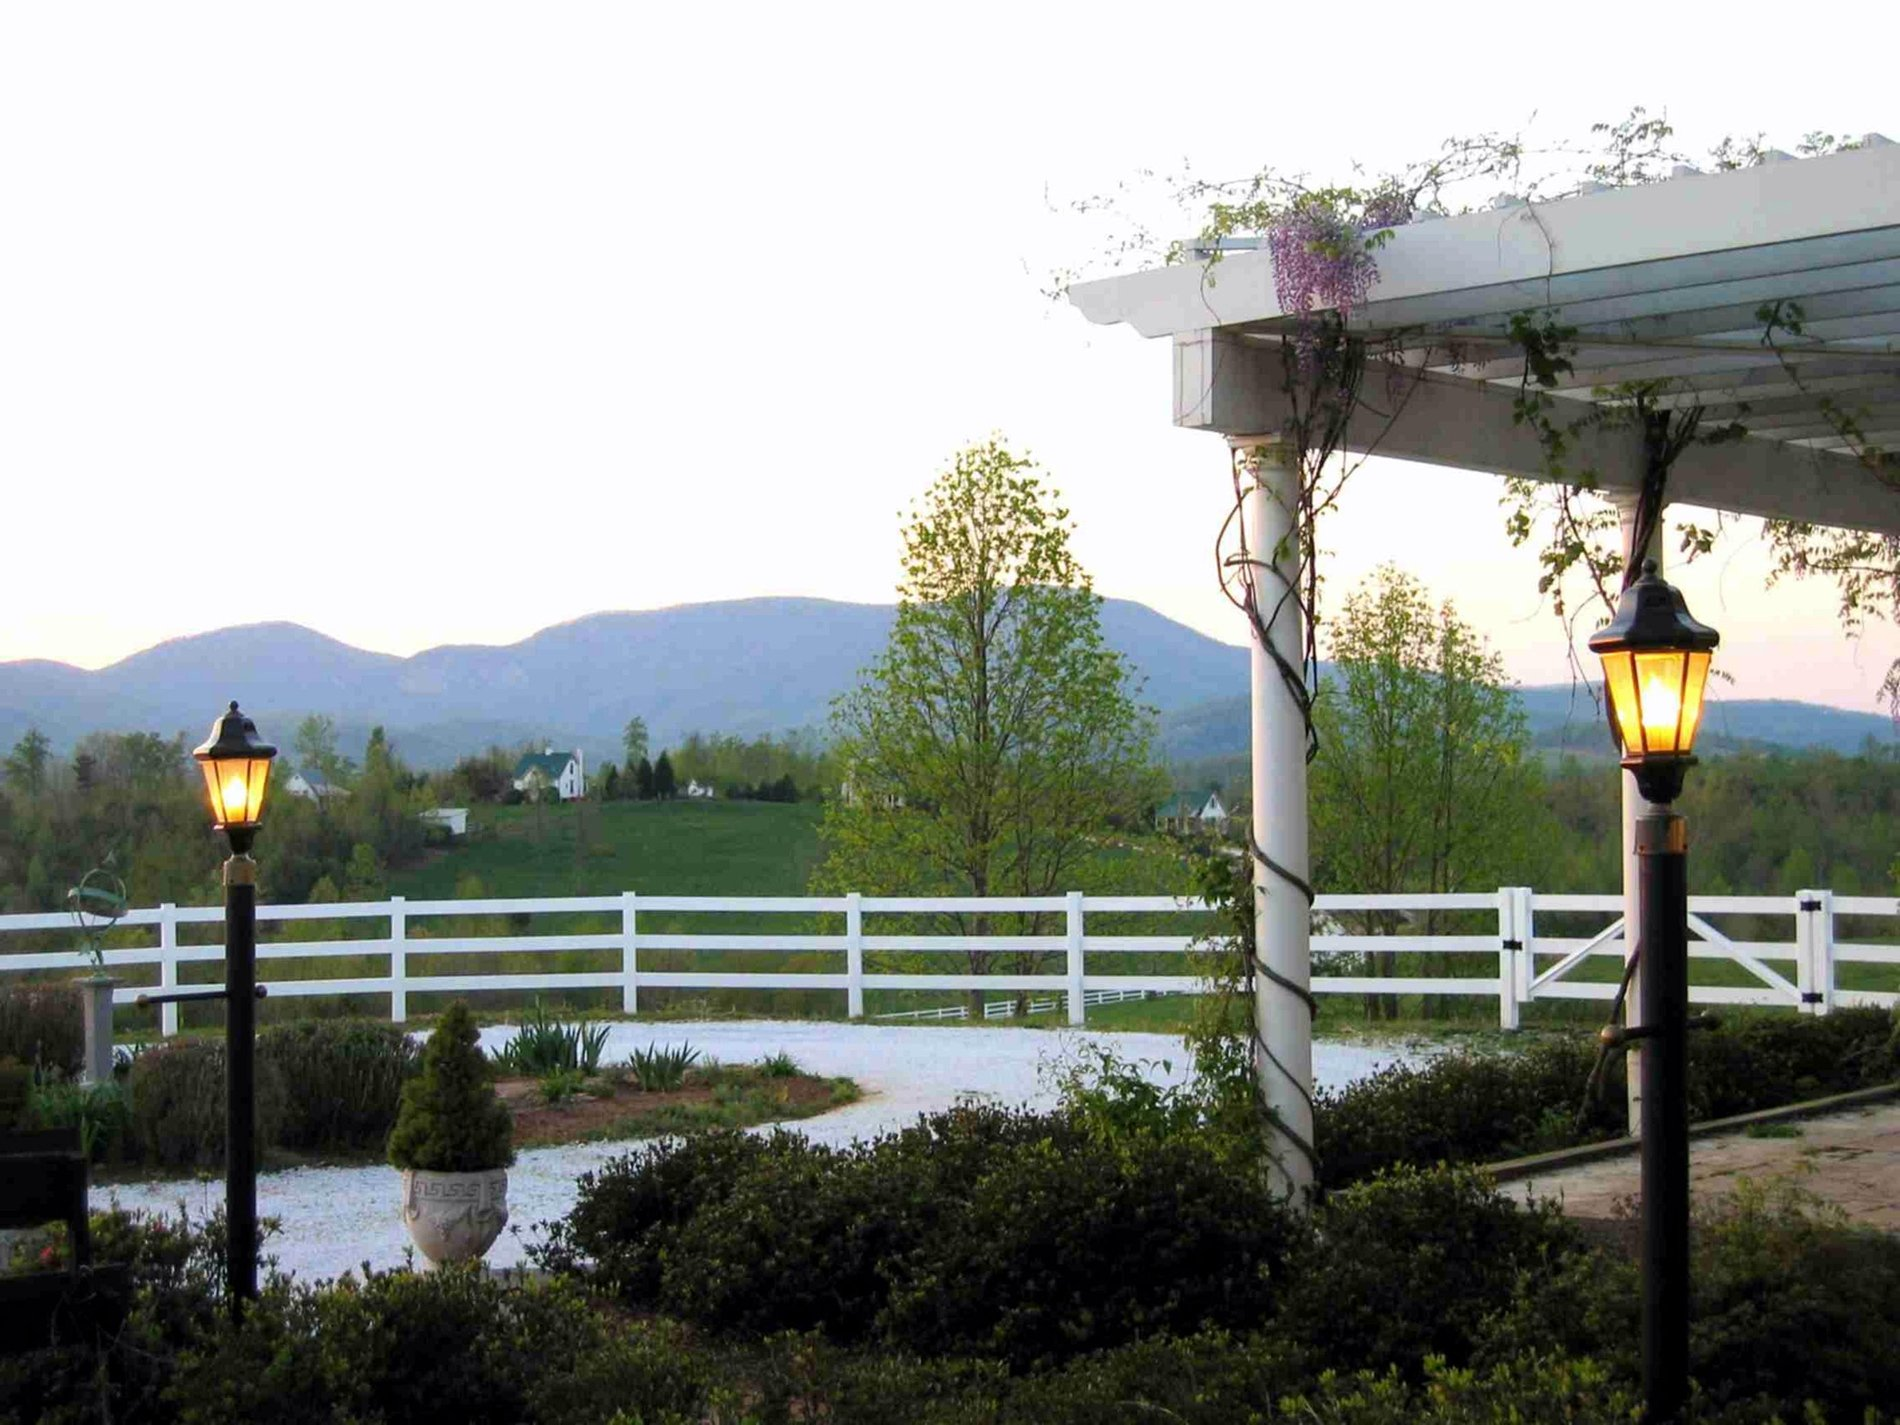 Blue Ridge Mountains, Terrace, Mountain View